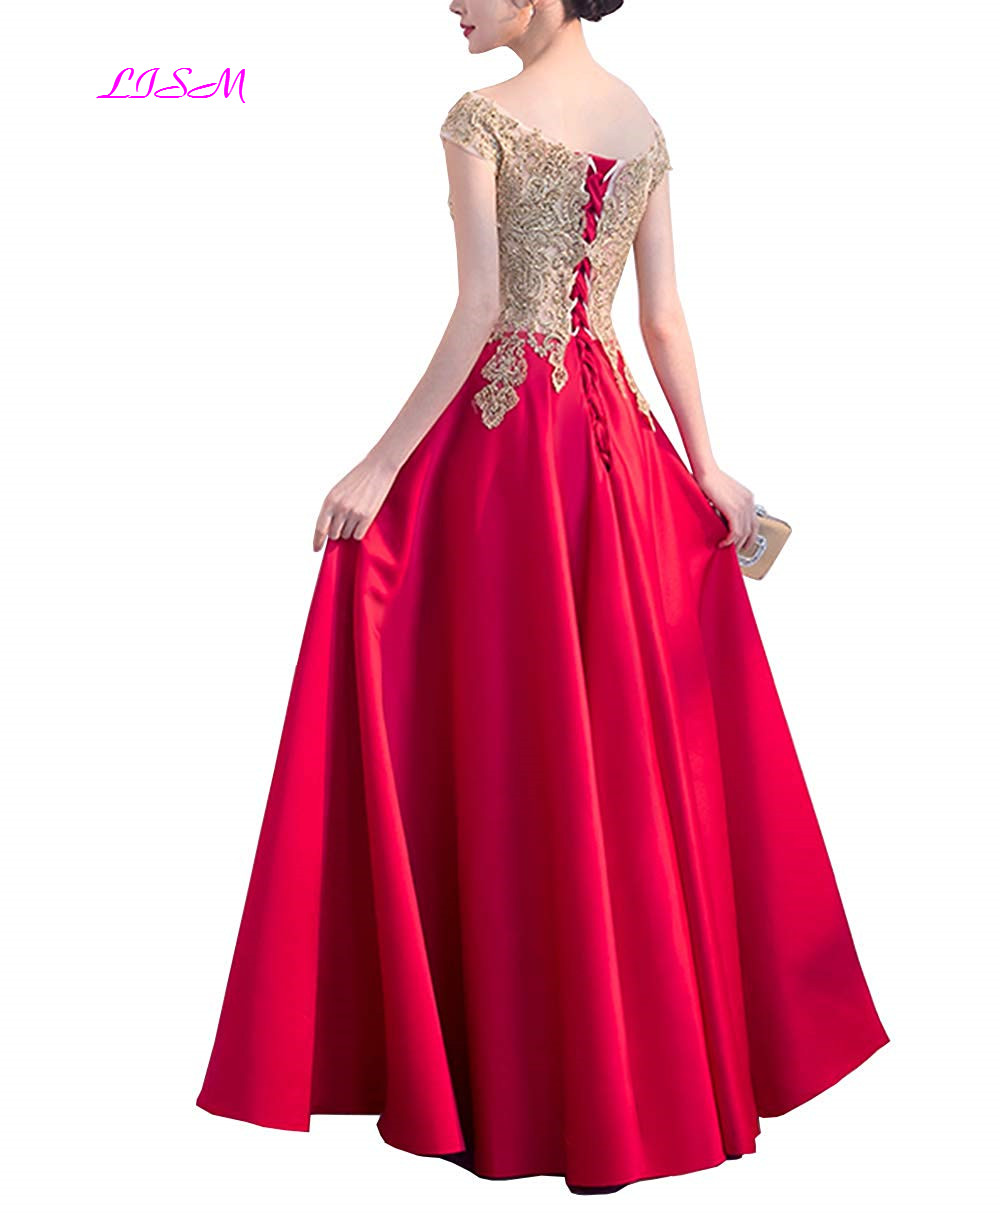 Evening Dresses Long V Neck Appliques Satin Elegant Formal Party Gowns A-Line Beaded Lace up Back Prom Dress 2019 Robe De Soiree